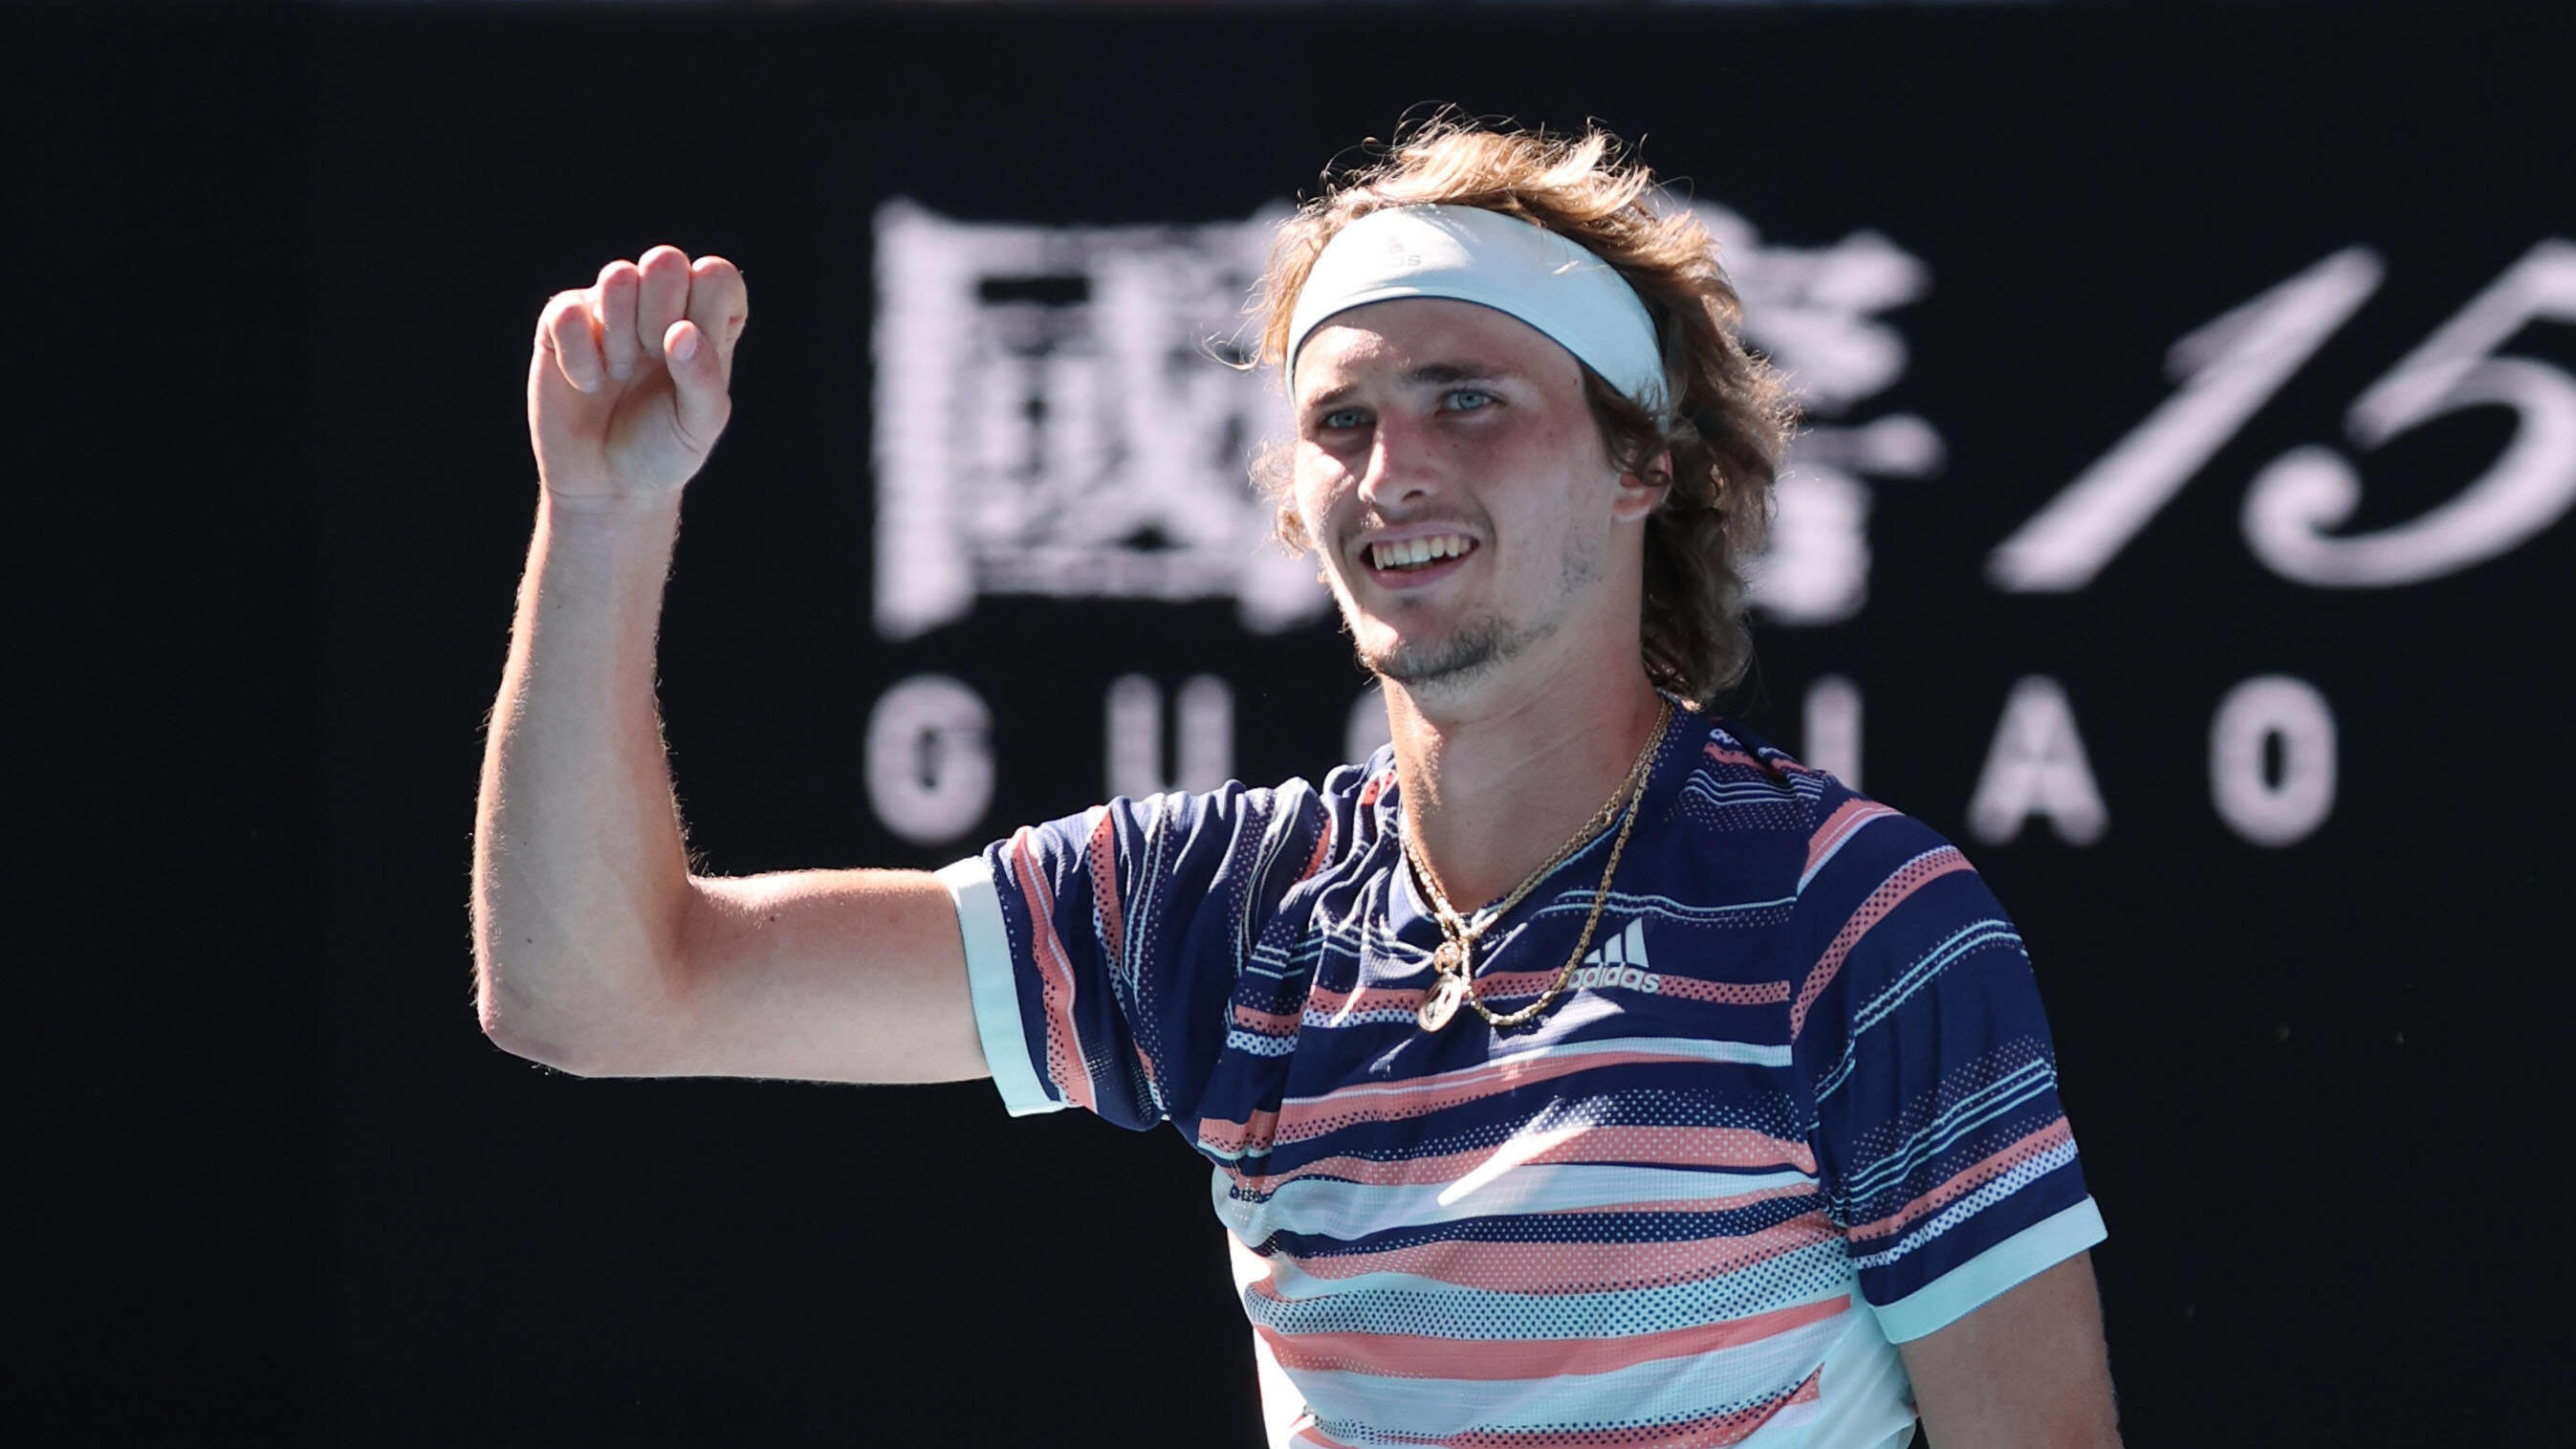 Alexander Zverev, GER, during quarterfinals of 2020 Australian Open in Melbourne, 29/01/2020 - *** Alexander Zverev, GER, during quarterfinals of 2020 Australian Open in Melbourne, 29 01 2020 PUBLICATIONxNOTxINxCHNxSUI